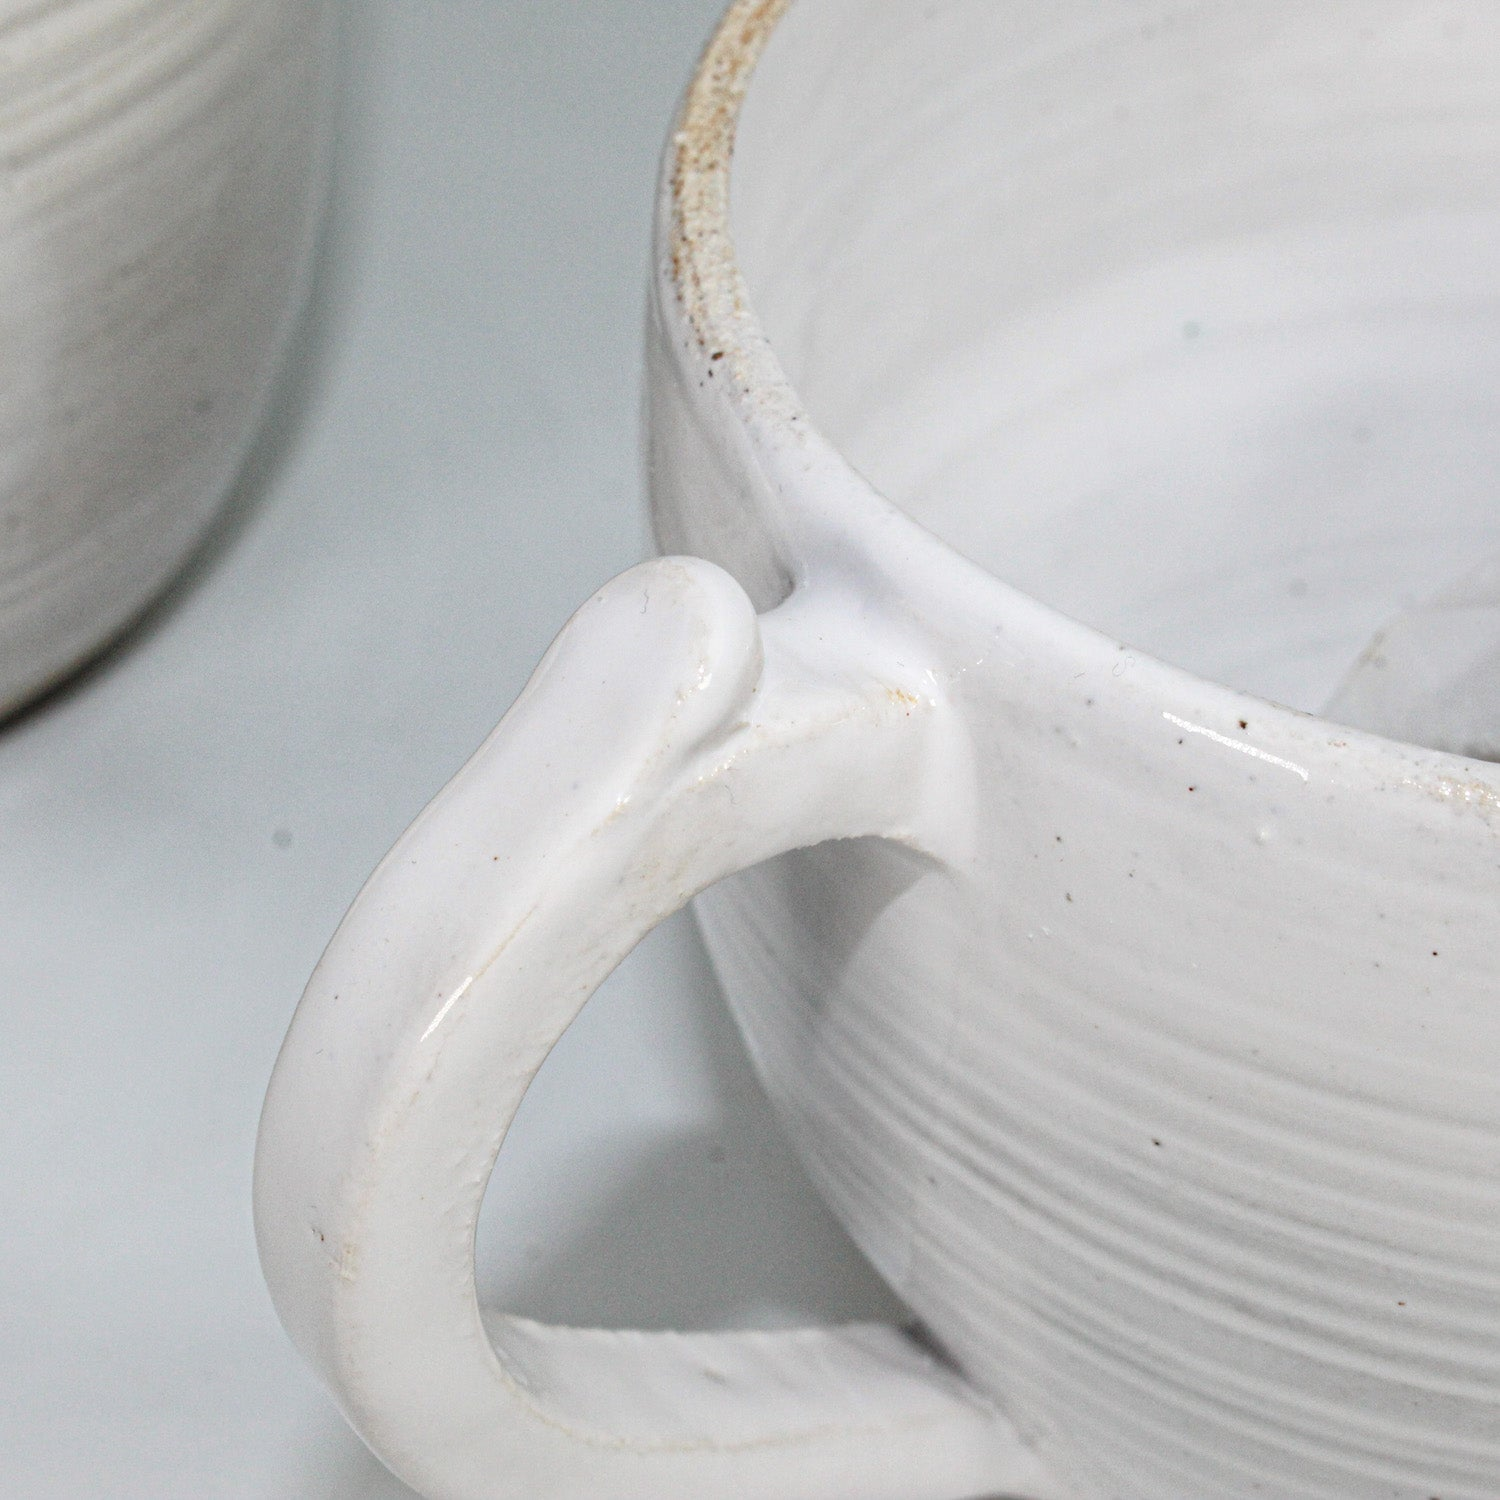 Close up of handle of off white ceramic cup